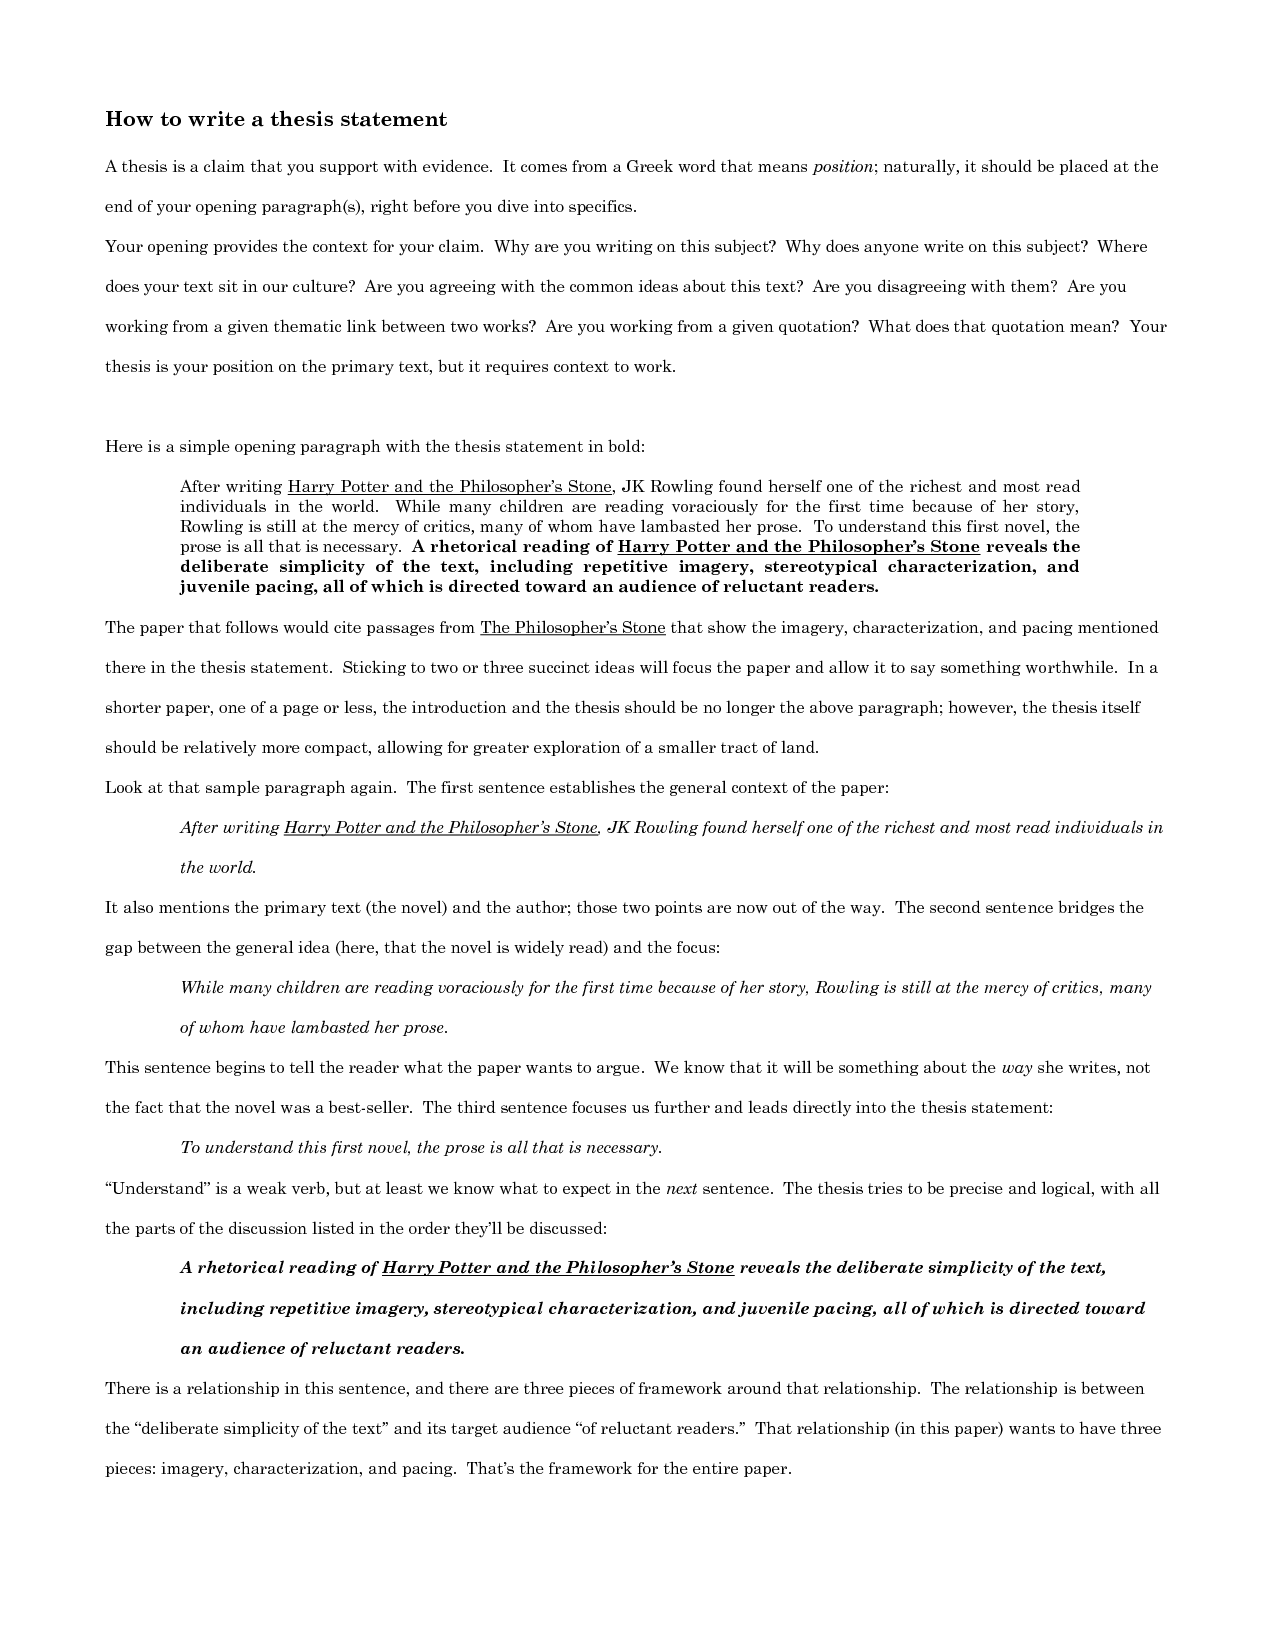 second author paper in thesis Writing a thesis paper for high school or college can prove to be an overwhelming and daunting task but it doesn't have to be breaking the process down into small chunks alleviates stress, improves the quality of research and affords the writer the opportunity to create an organized, well-written paper.